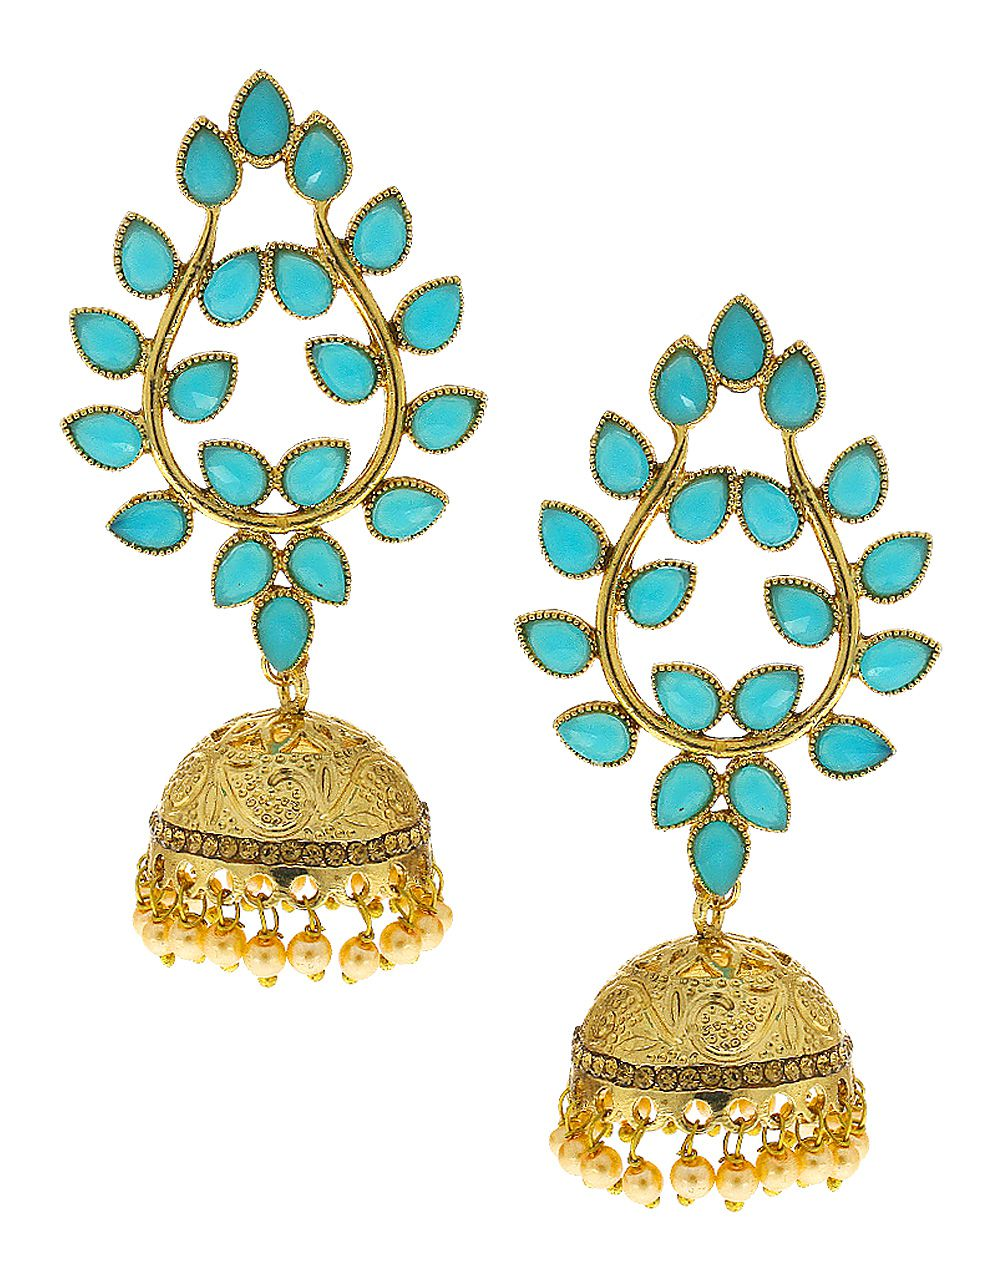 Anuradha Art Turquoise Colour Styled With Sparkling Stone & Pearl Beads Droplet Beautiful Traditional Jhumki/Jhumkas Earrings For Women/Girls